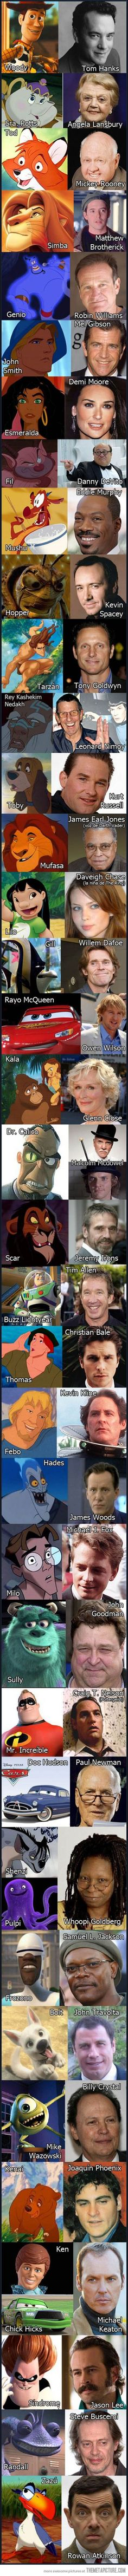 Disney characters and their real faces…